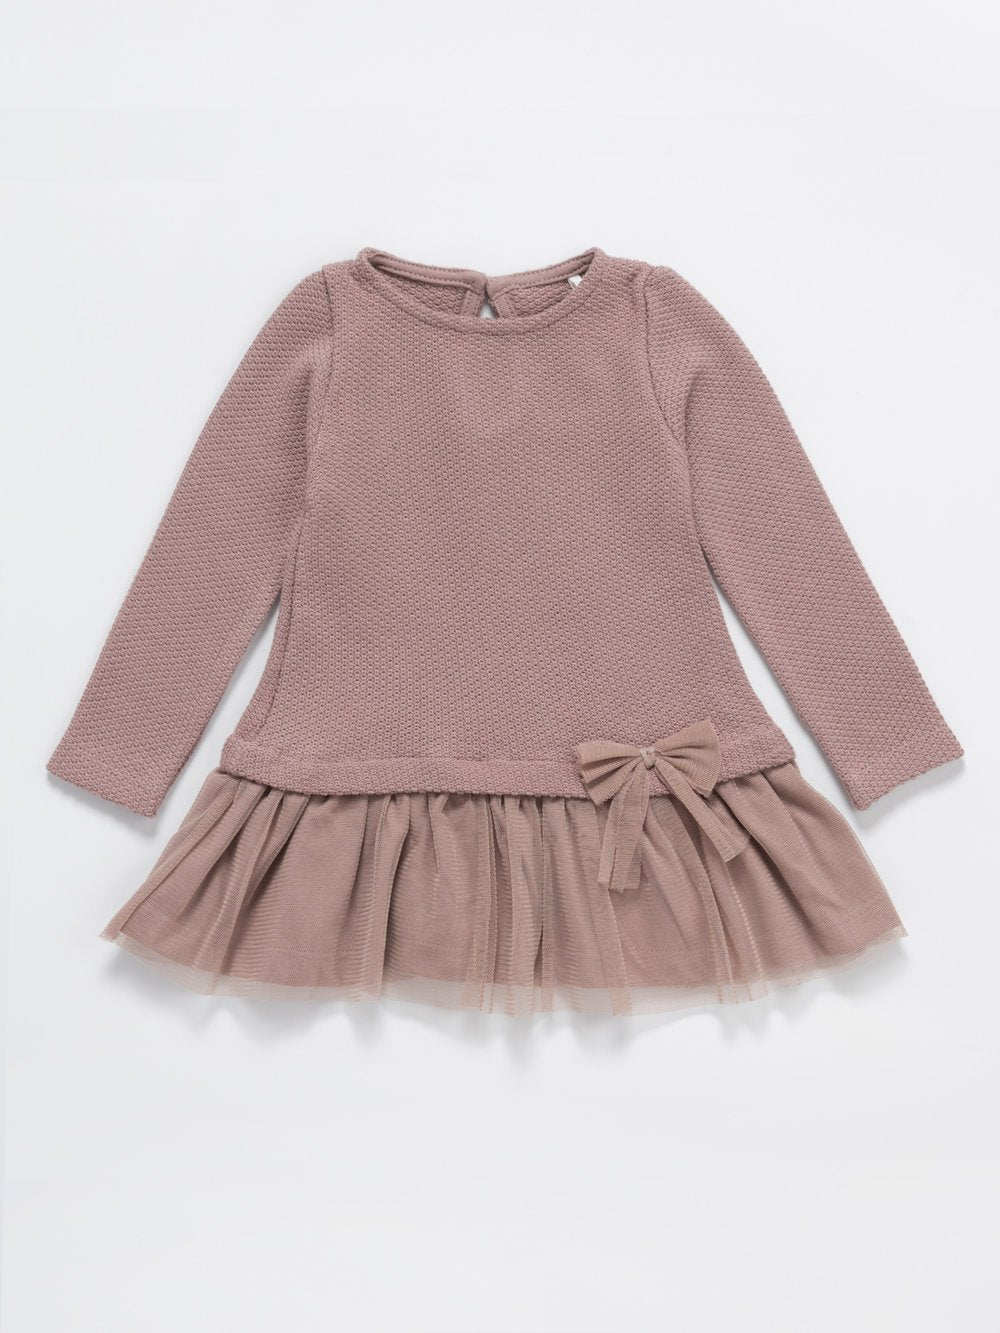 Dusky Rose Tulle Frill Jumper Dress - Girls 3 months to 4 years - Stylemykid.com